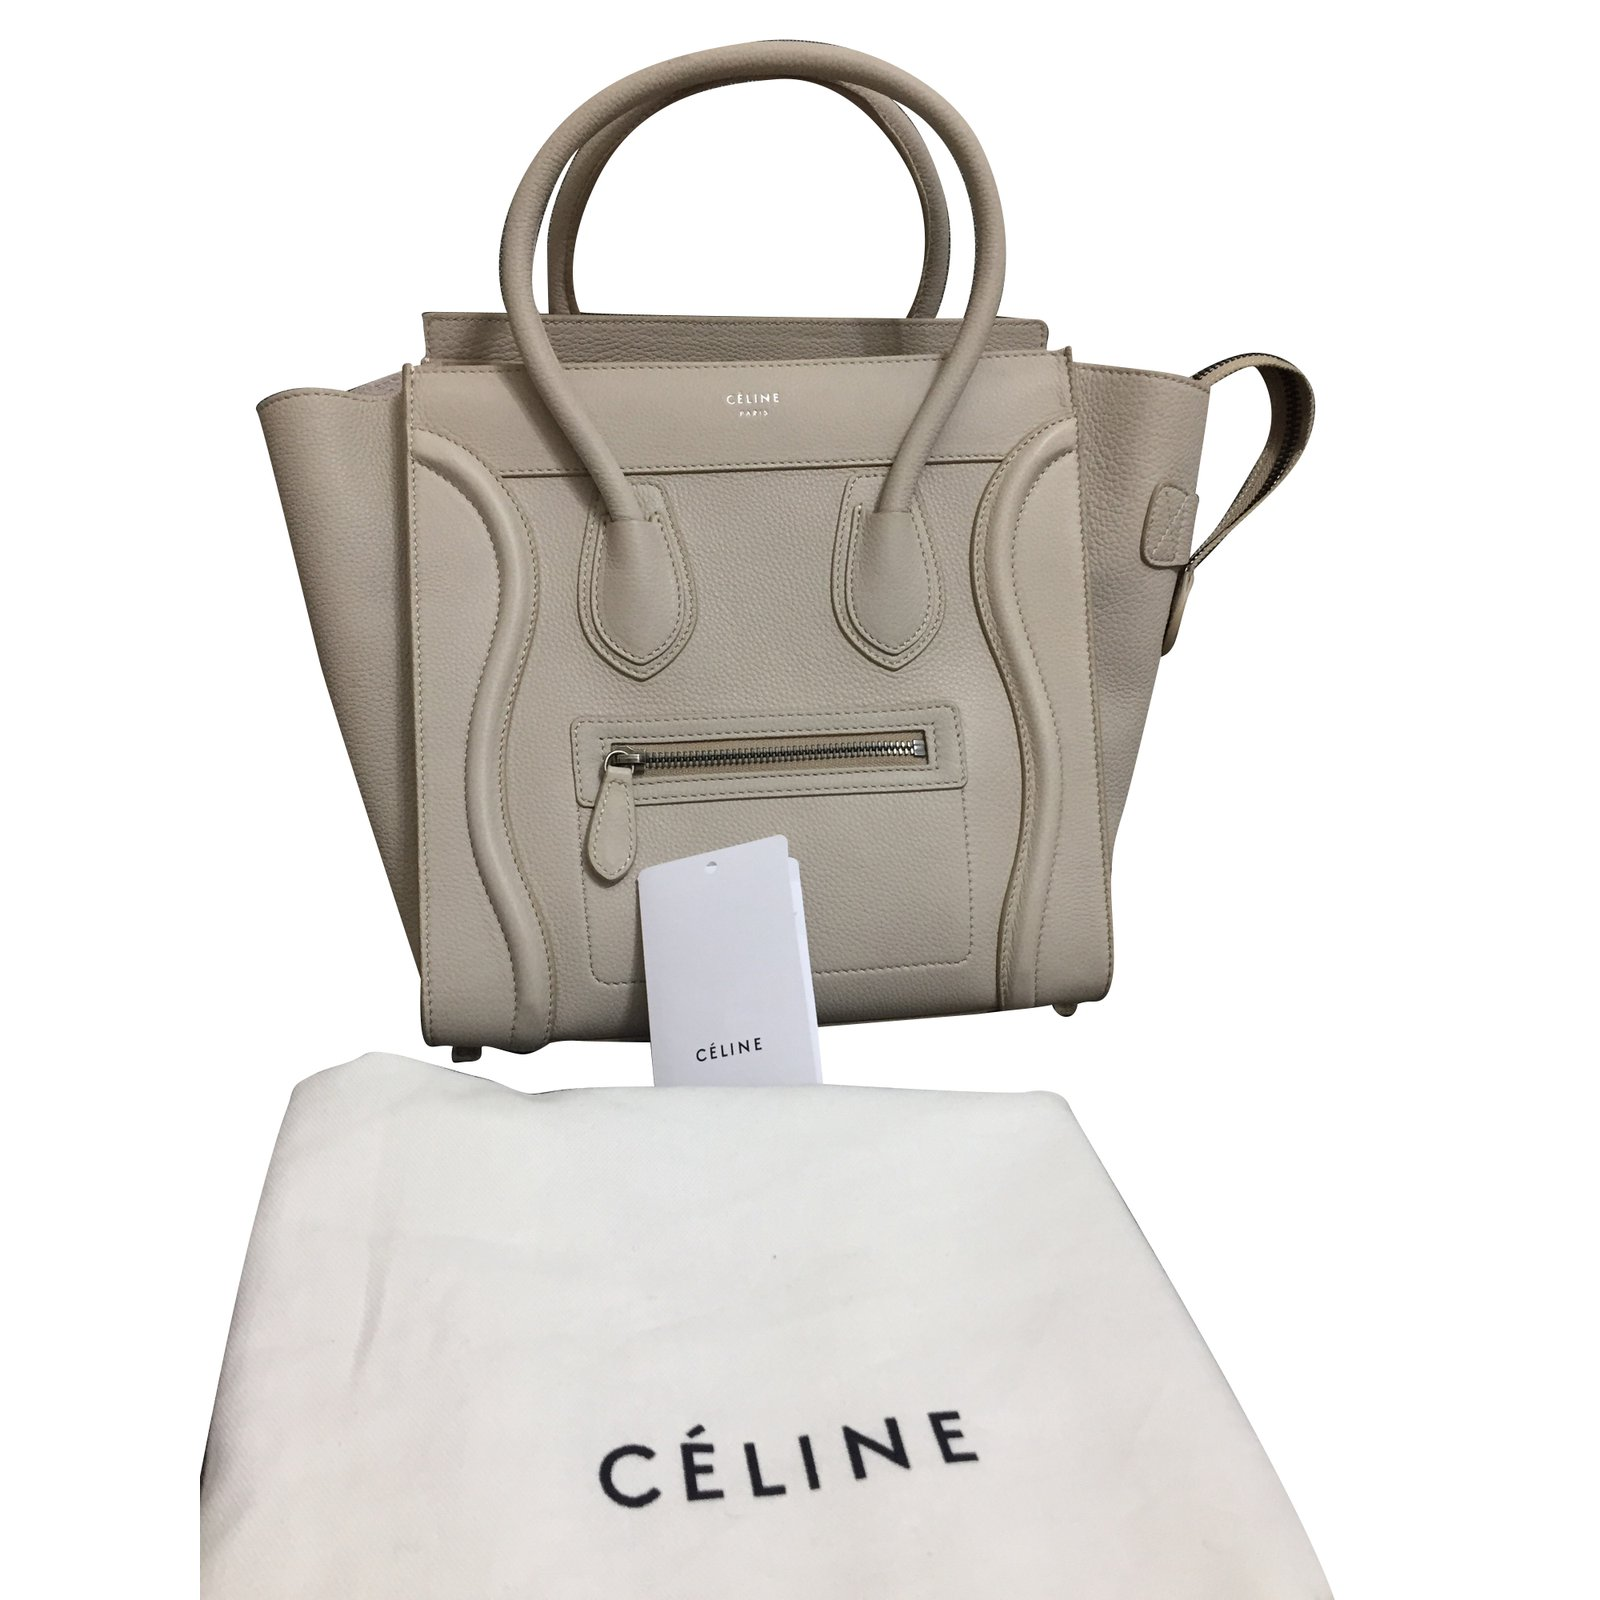 b0928c54a00e Céline Handbag Handbags Leather Beige Ref 85194 Joli Closet